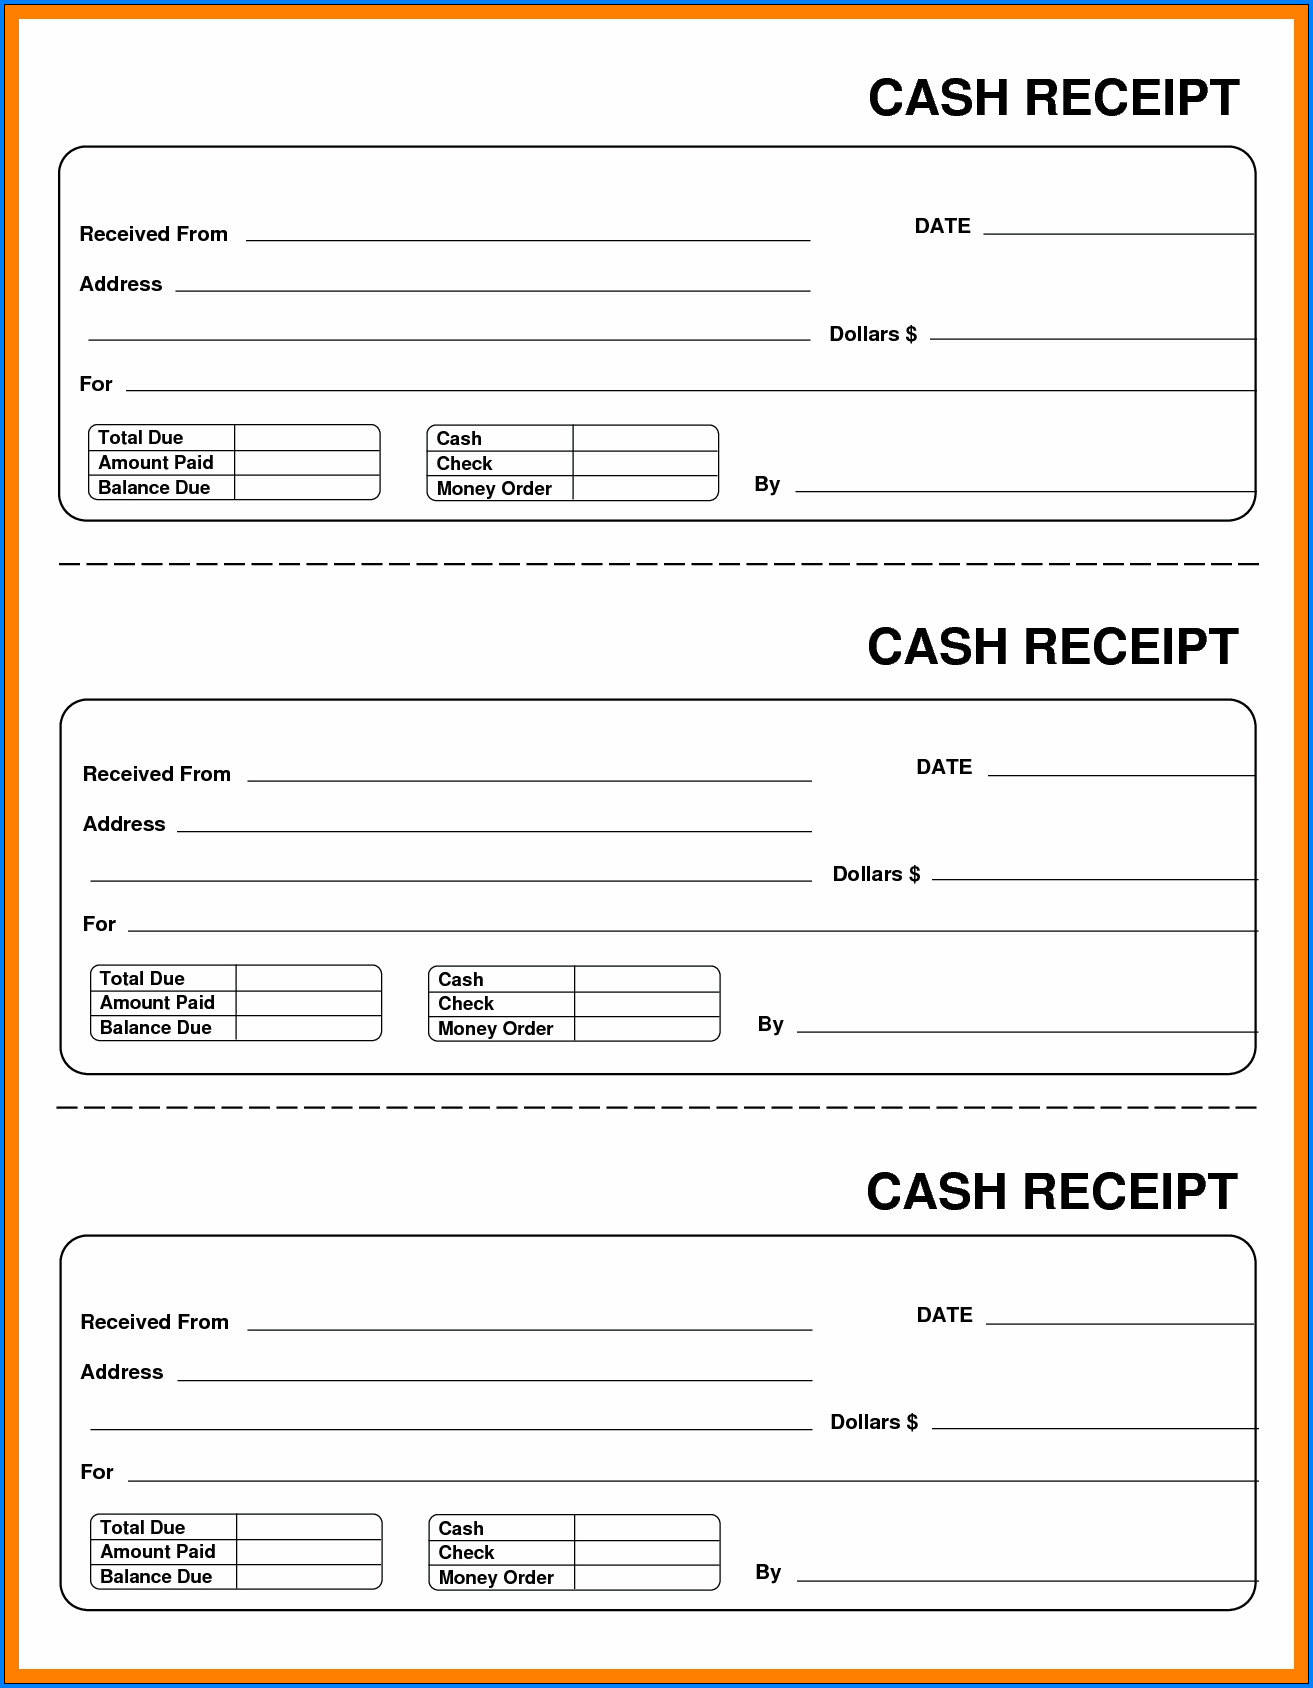 Cash Receipt Template Example